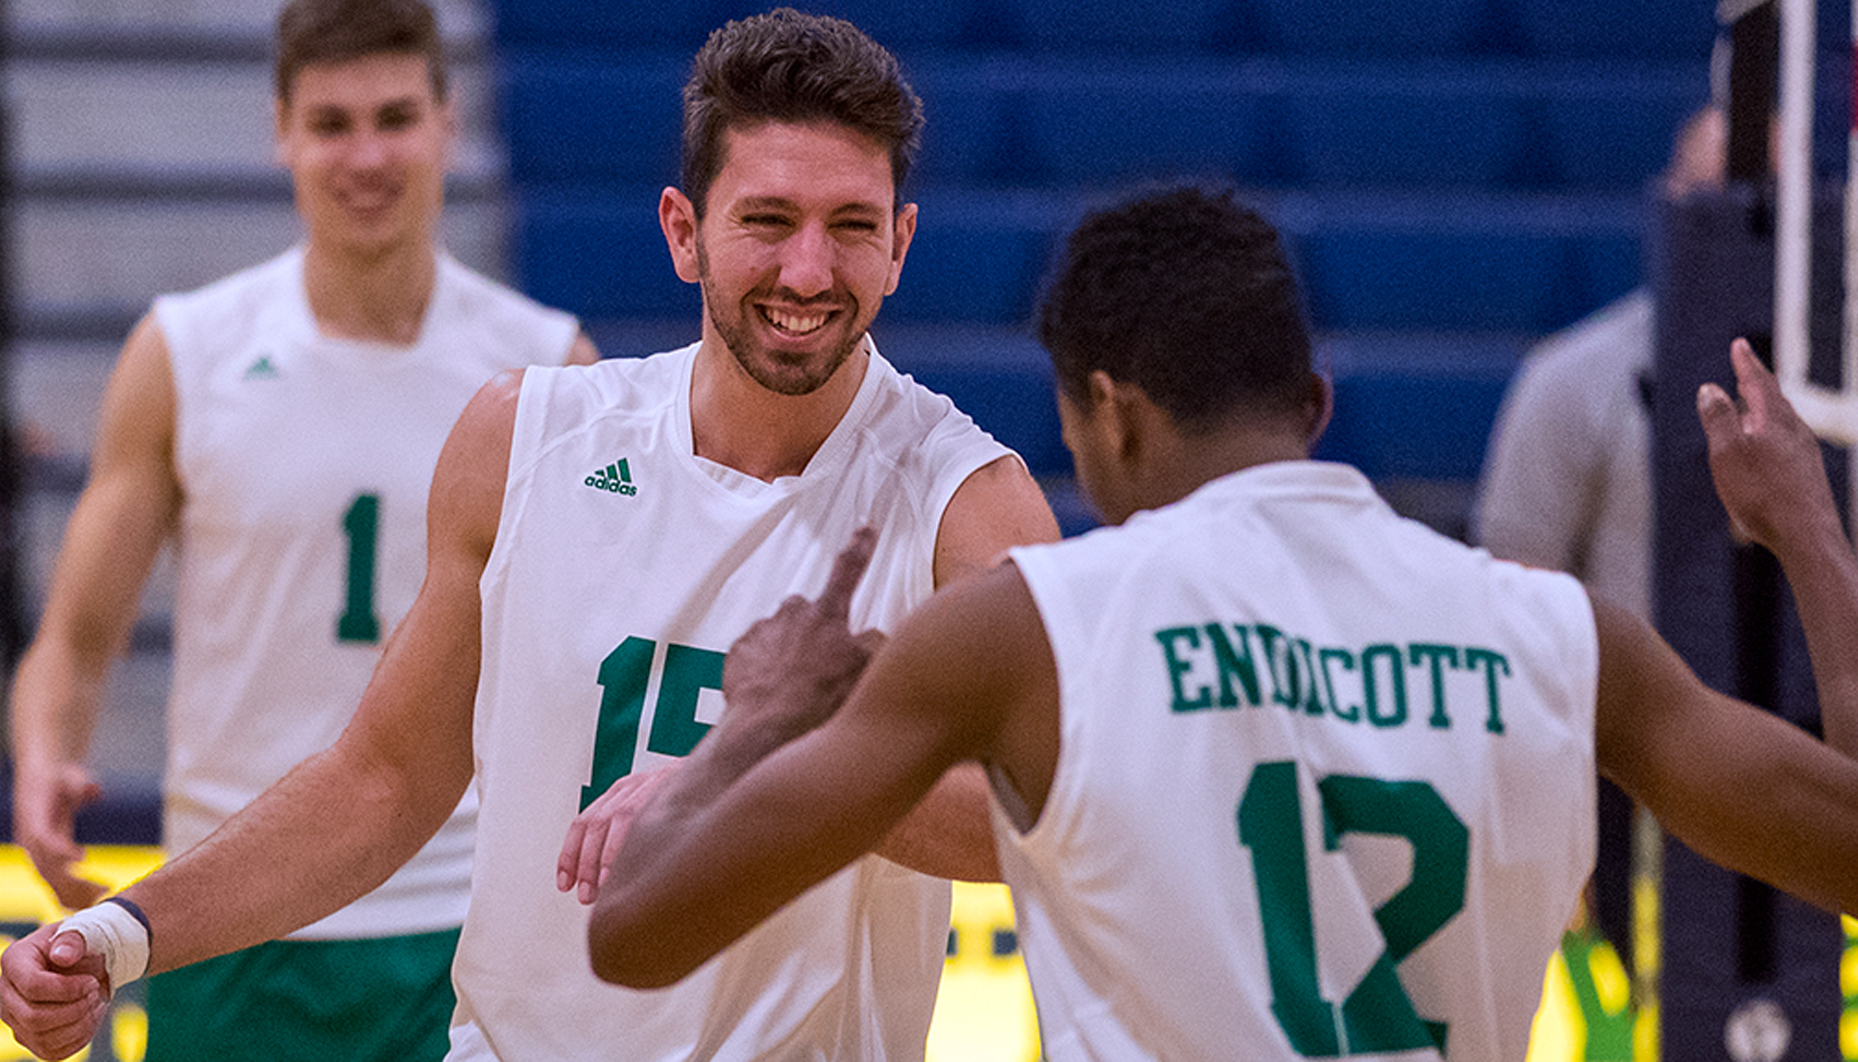 Endicott Defeats Nichols 3-0, Advances to Championship Match